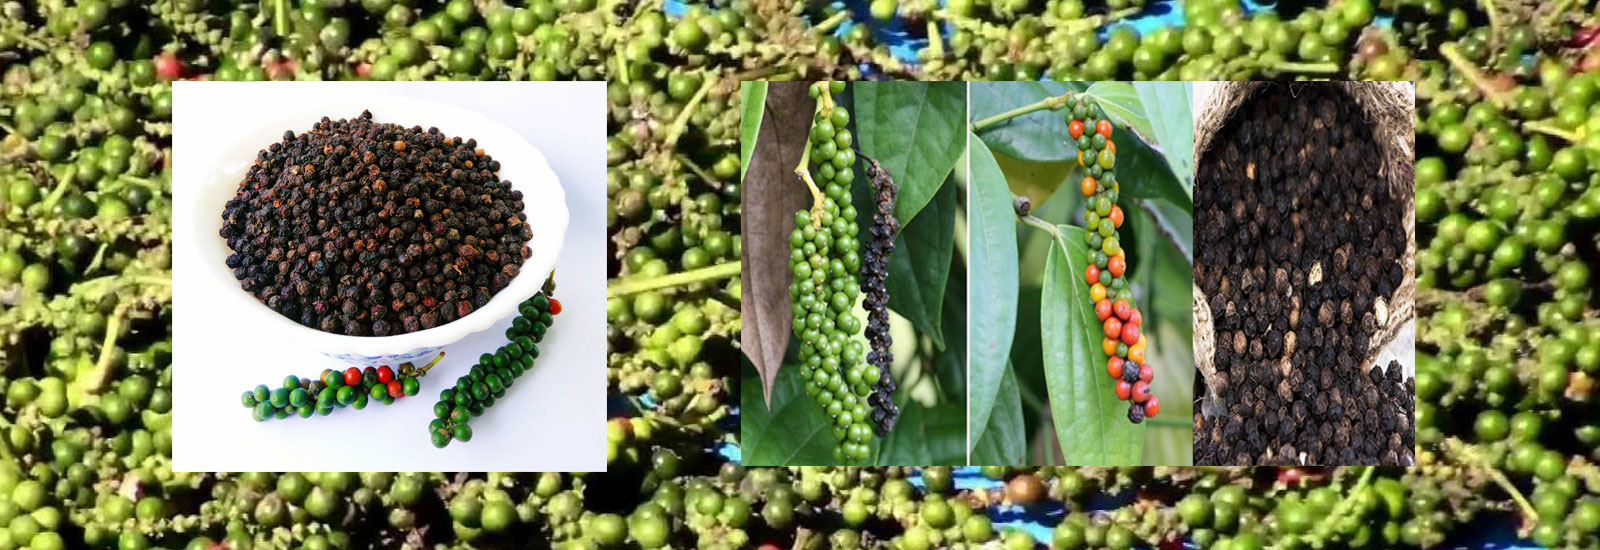 Wholesale Distributors In Chennai Thangam Trading Company Black Pepper Dealers Chennai